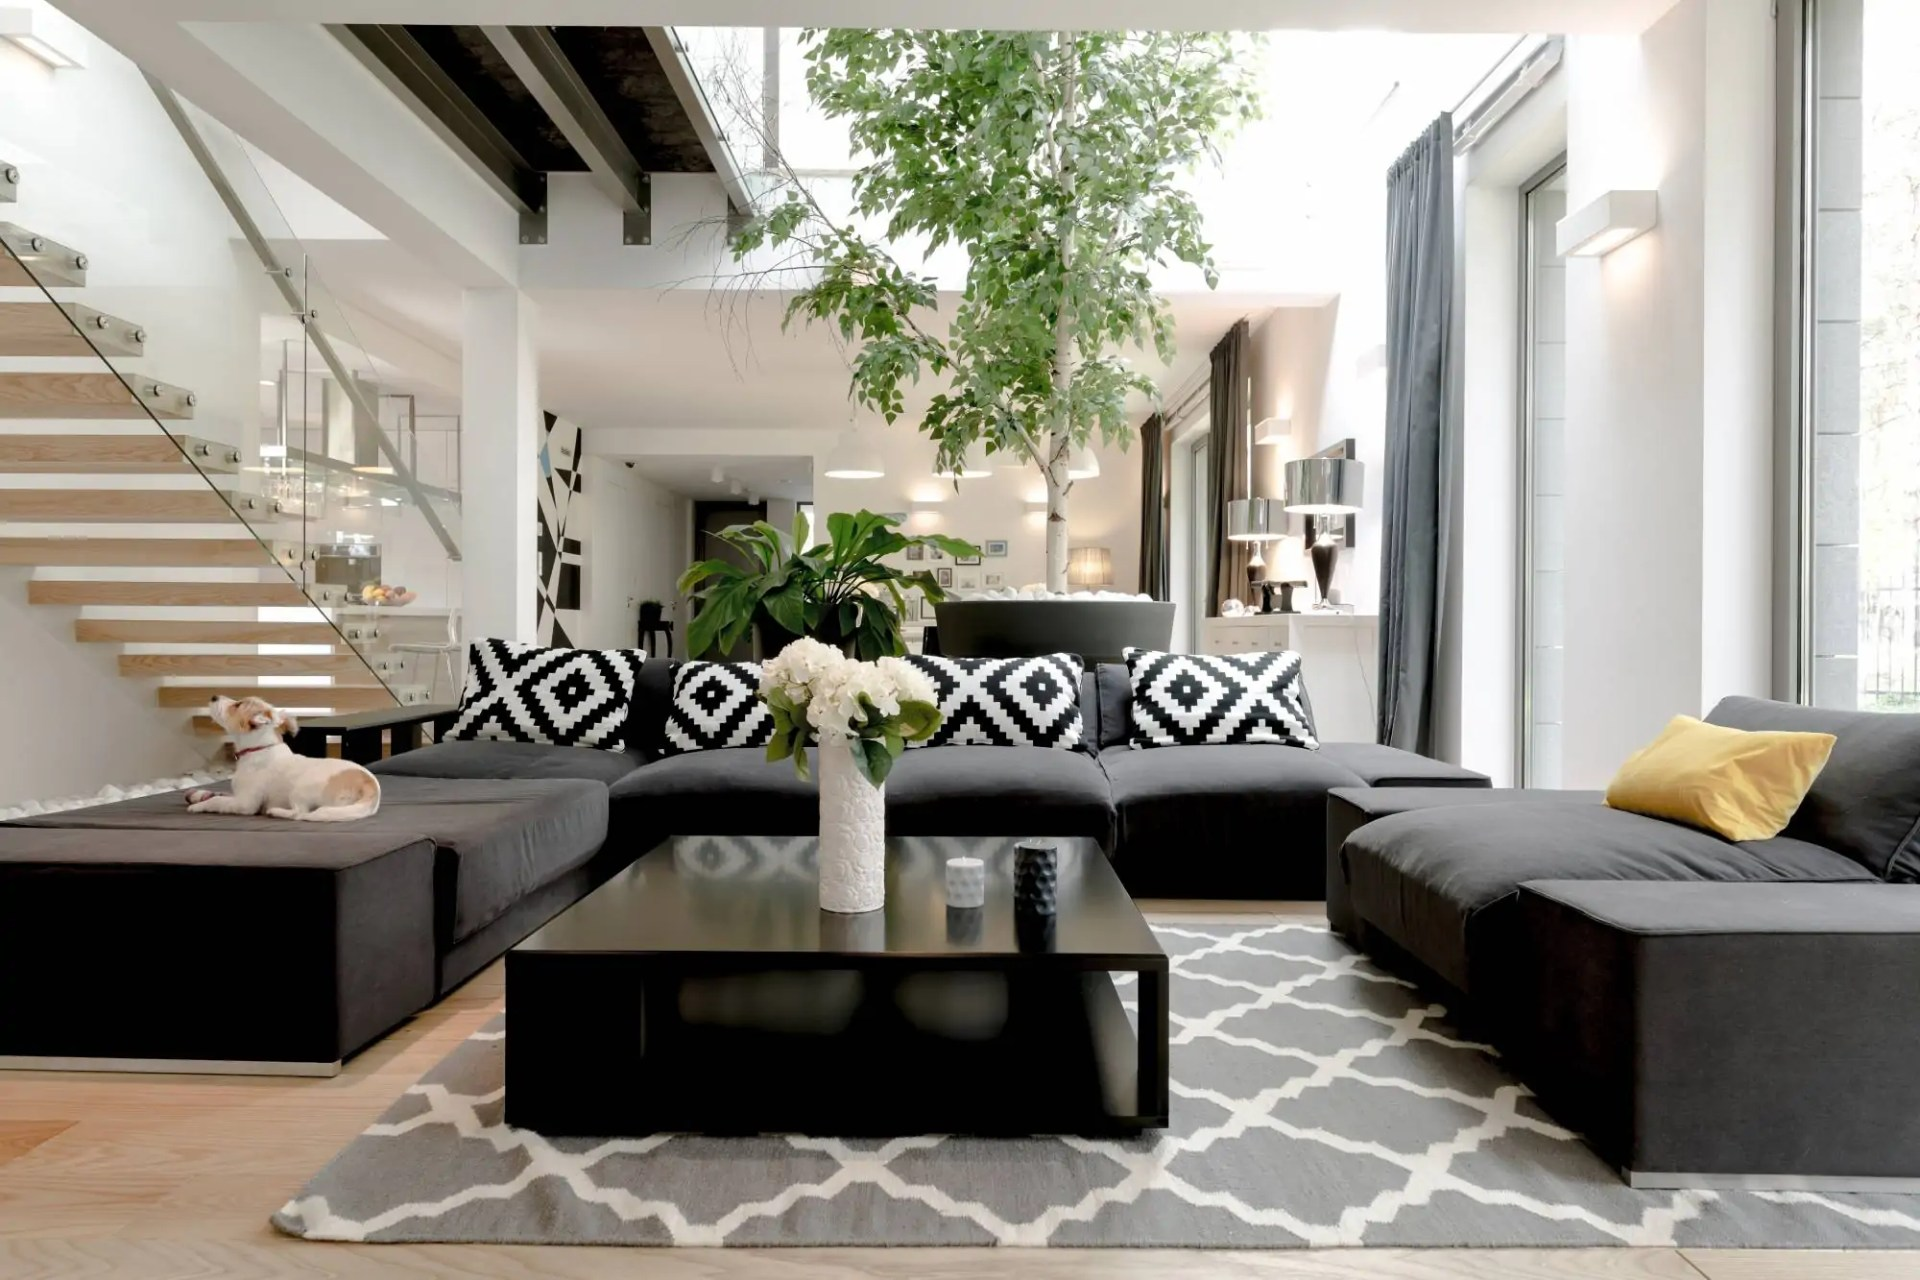 Interieur trends 2018 living done right for Interieur trends 2018